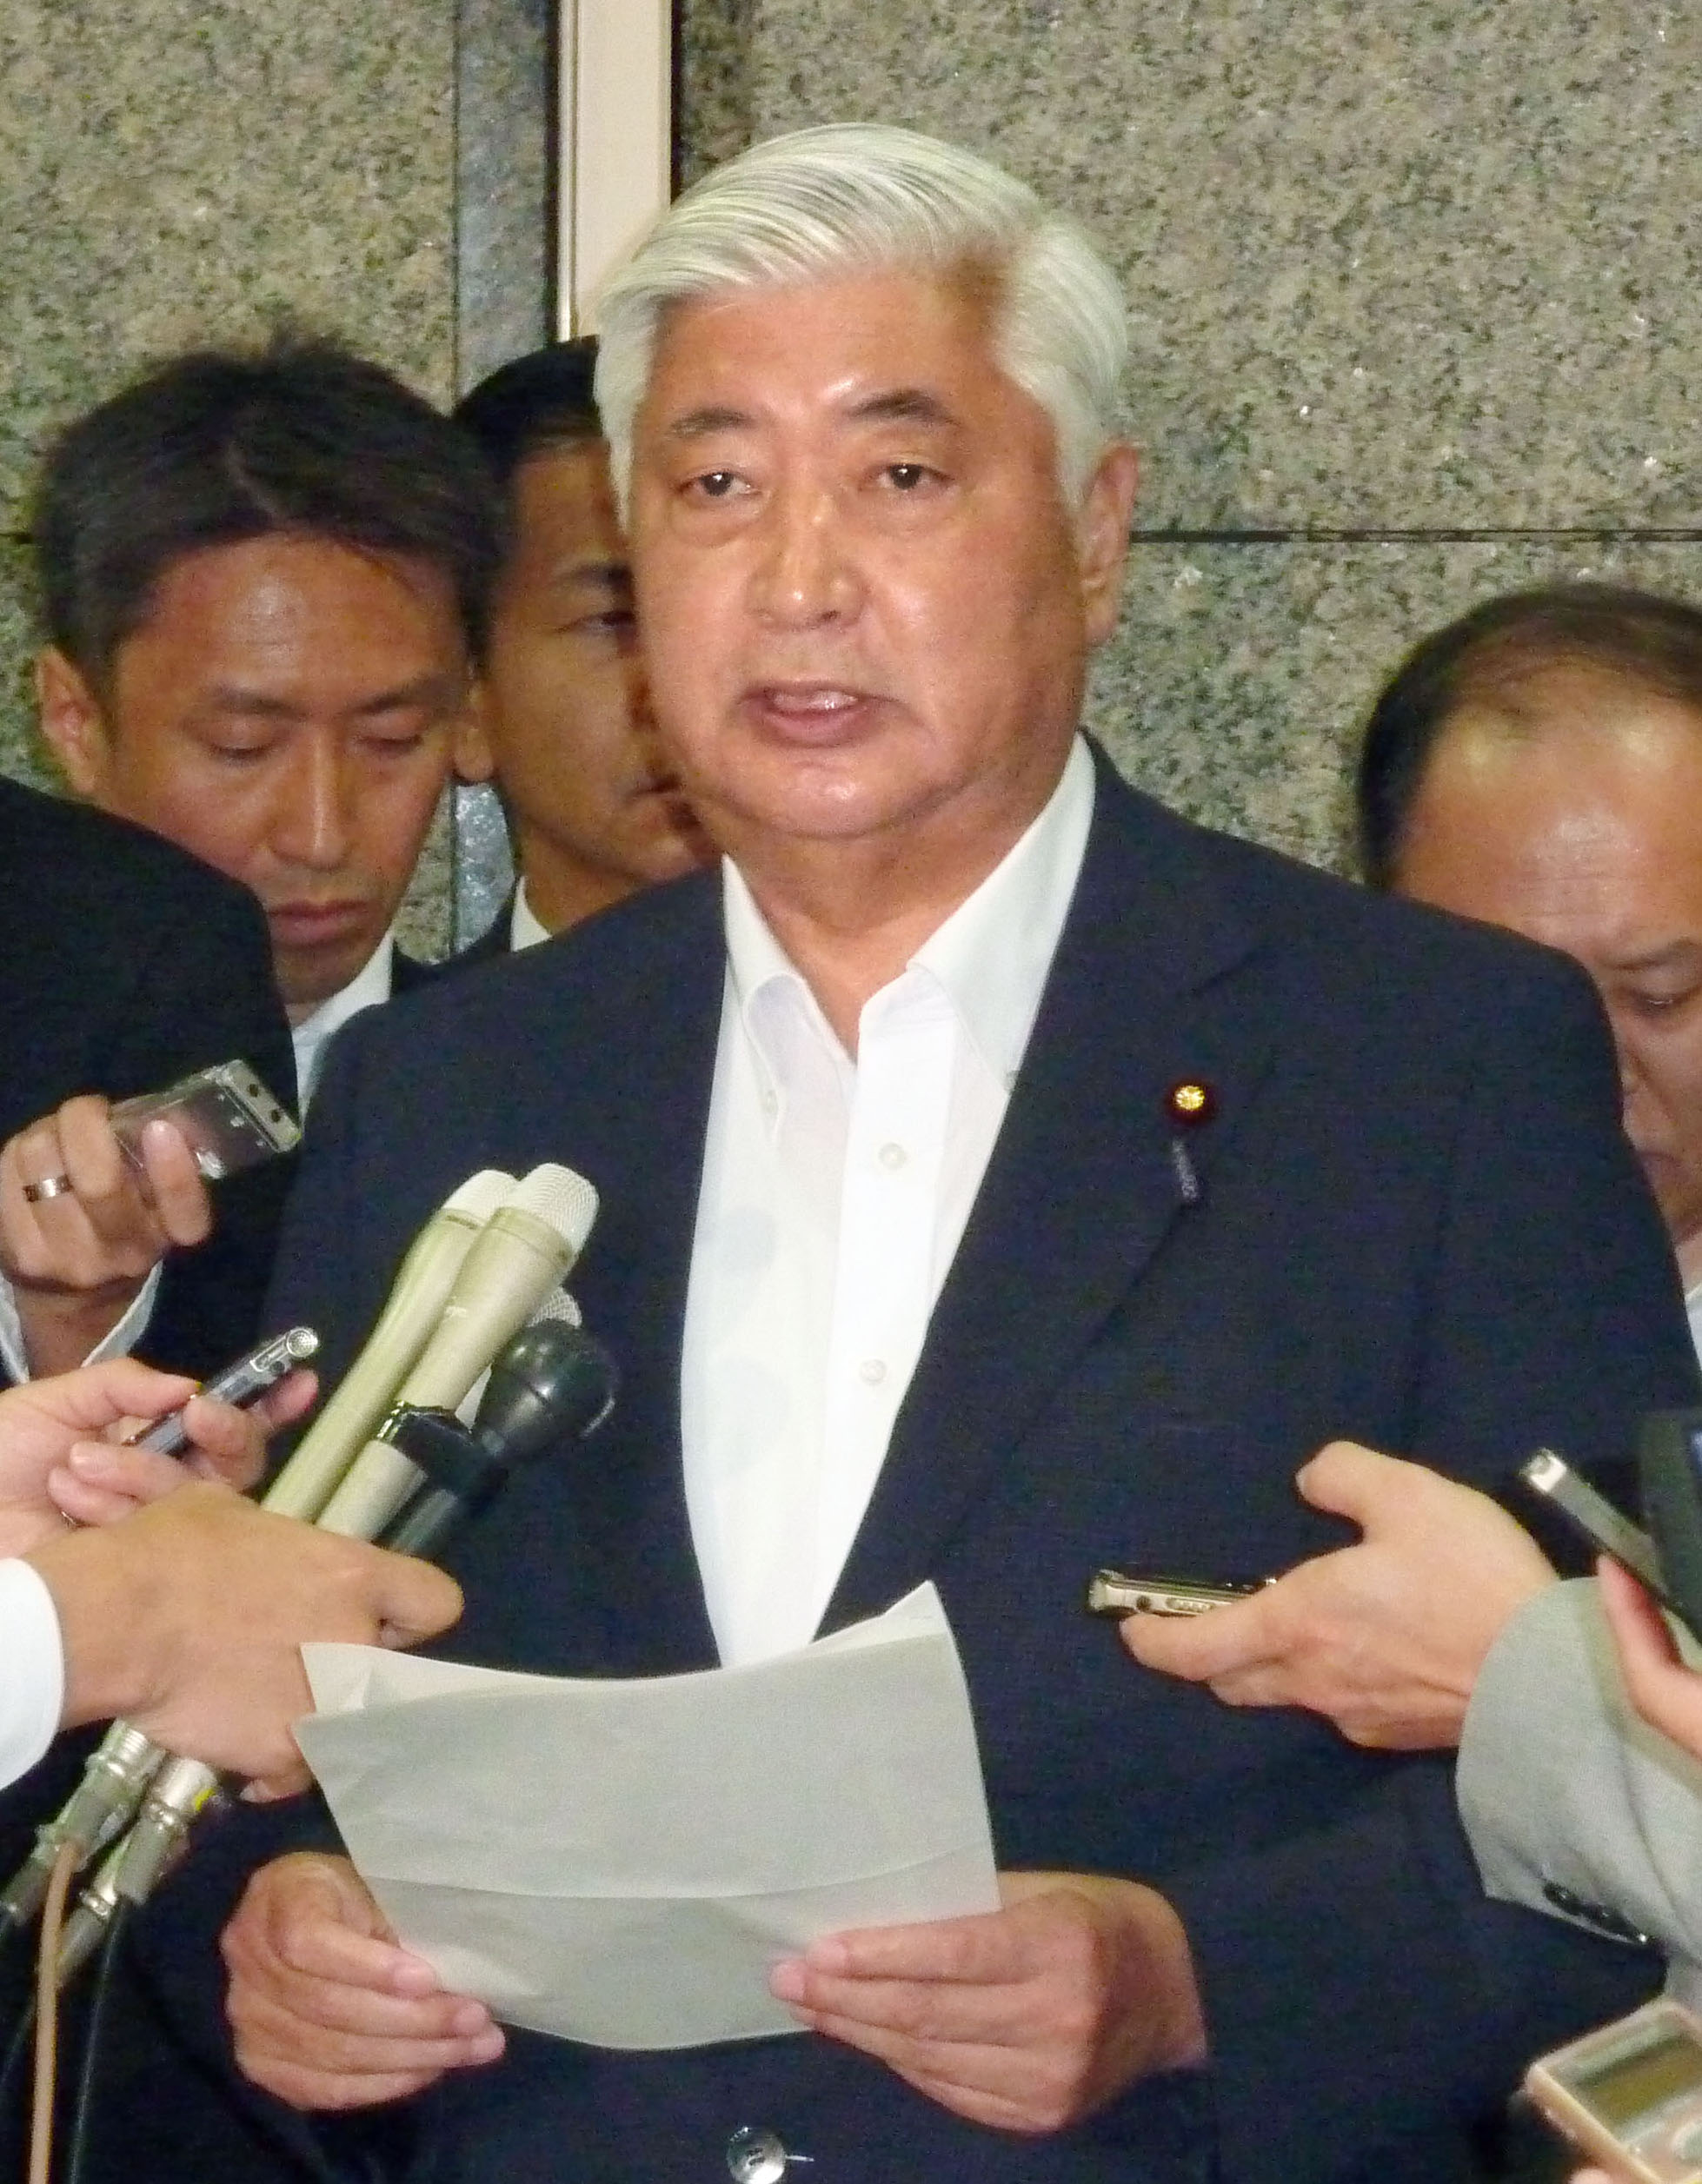 Japanese Defense Minister Gen Nakatani meets with reporters in Tokyo on June 15, 2016, at his ministry after a Chinese naval ship briefly entered Japan's territorial waters off the southwestern island of Kuchinoerabu